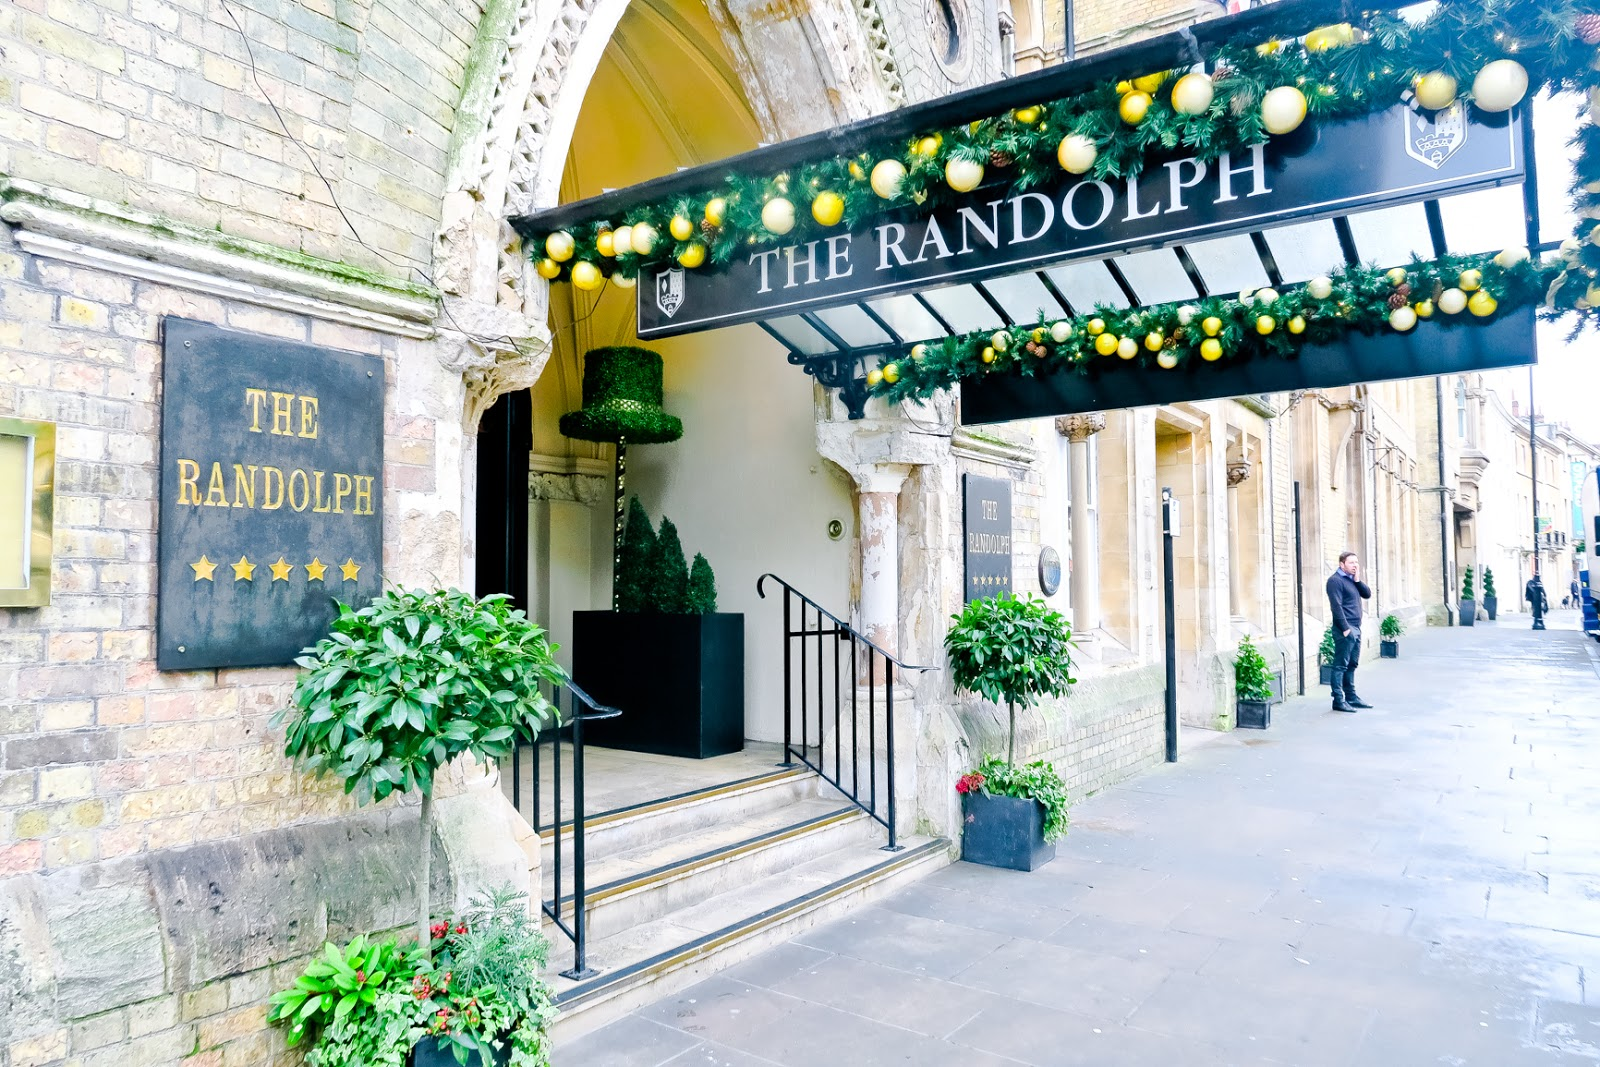 macdonald randolph hotel and spa oxford review,